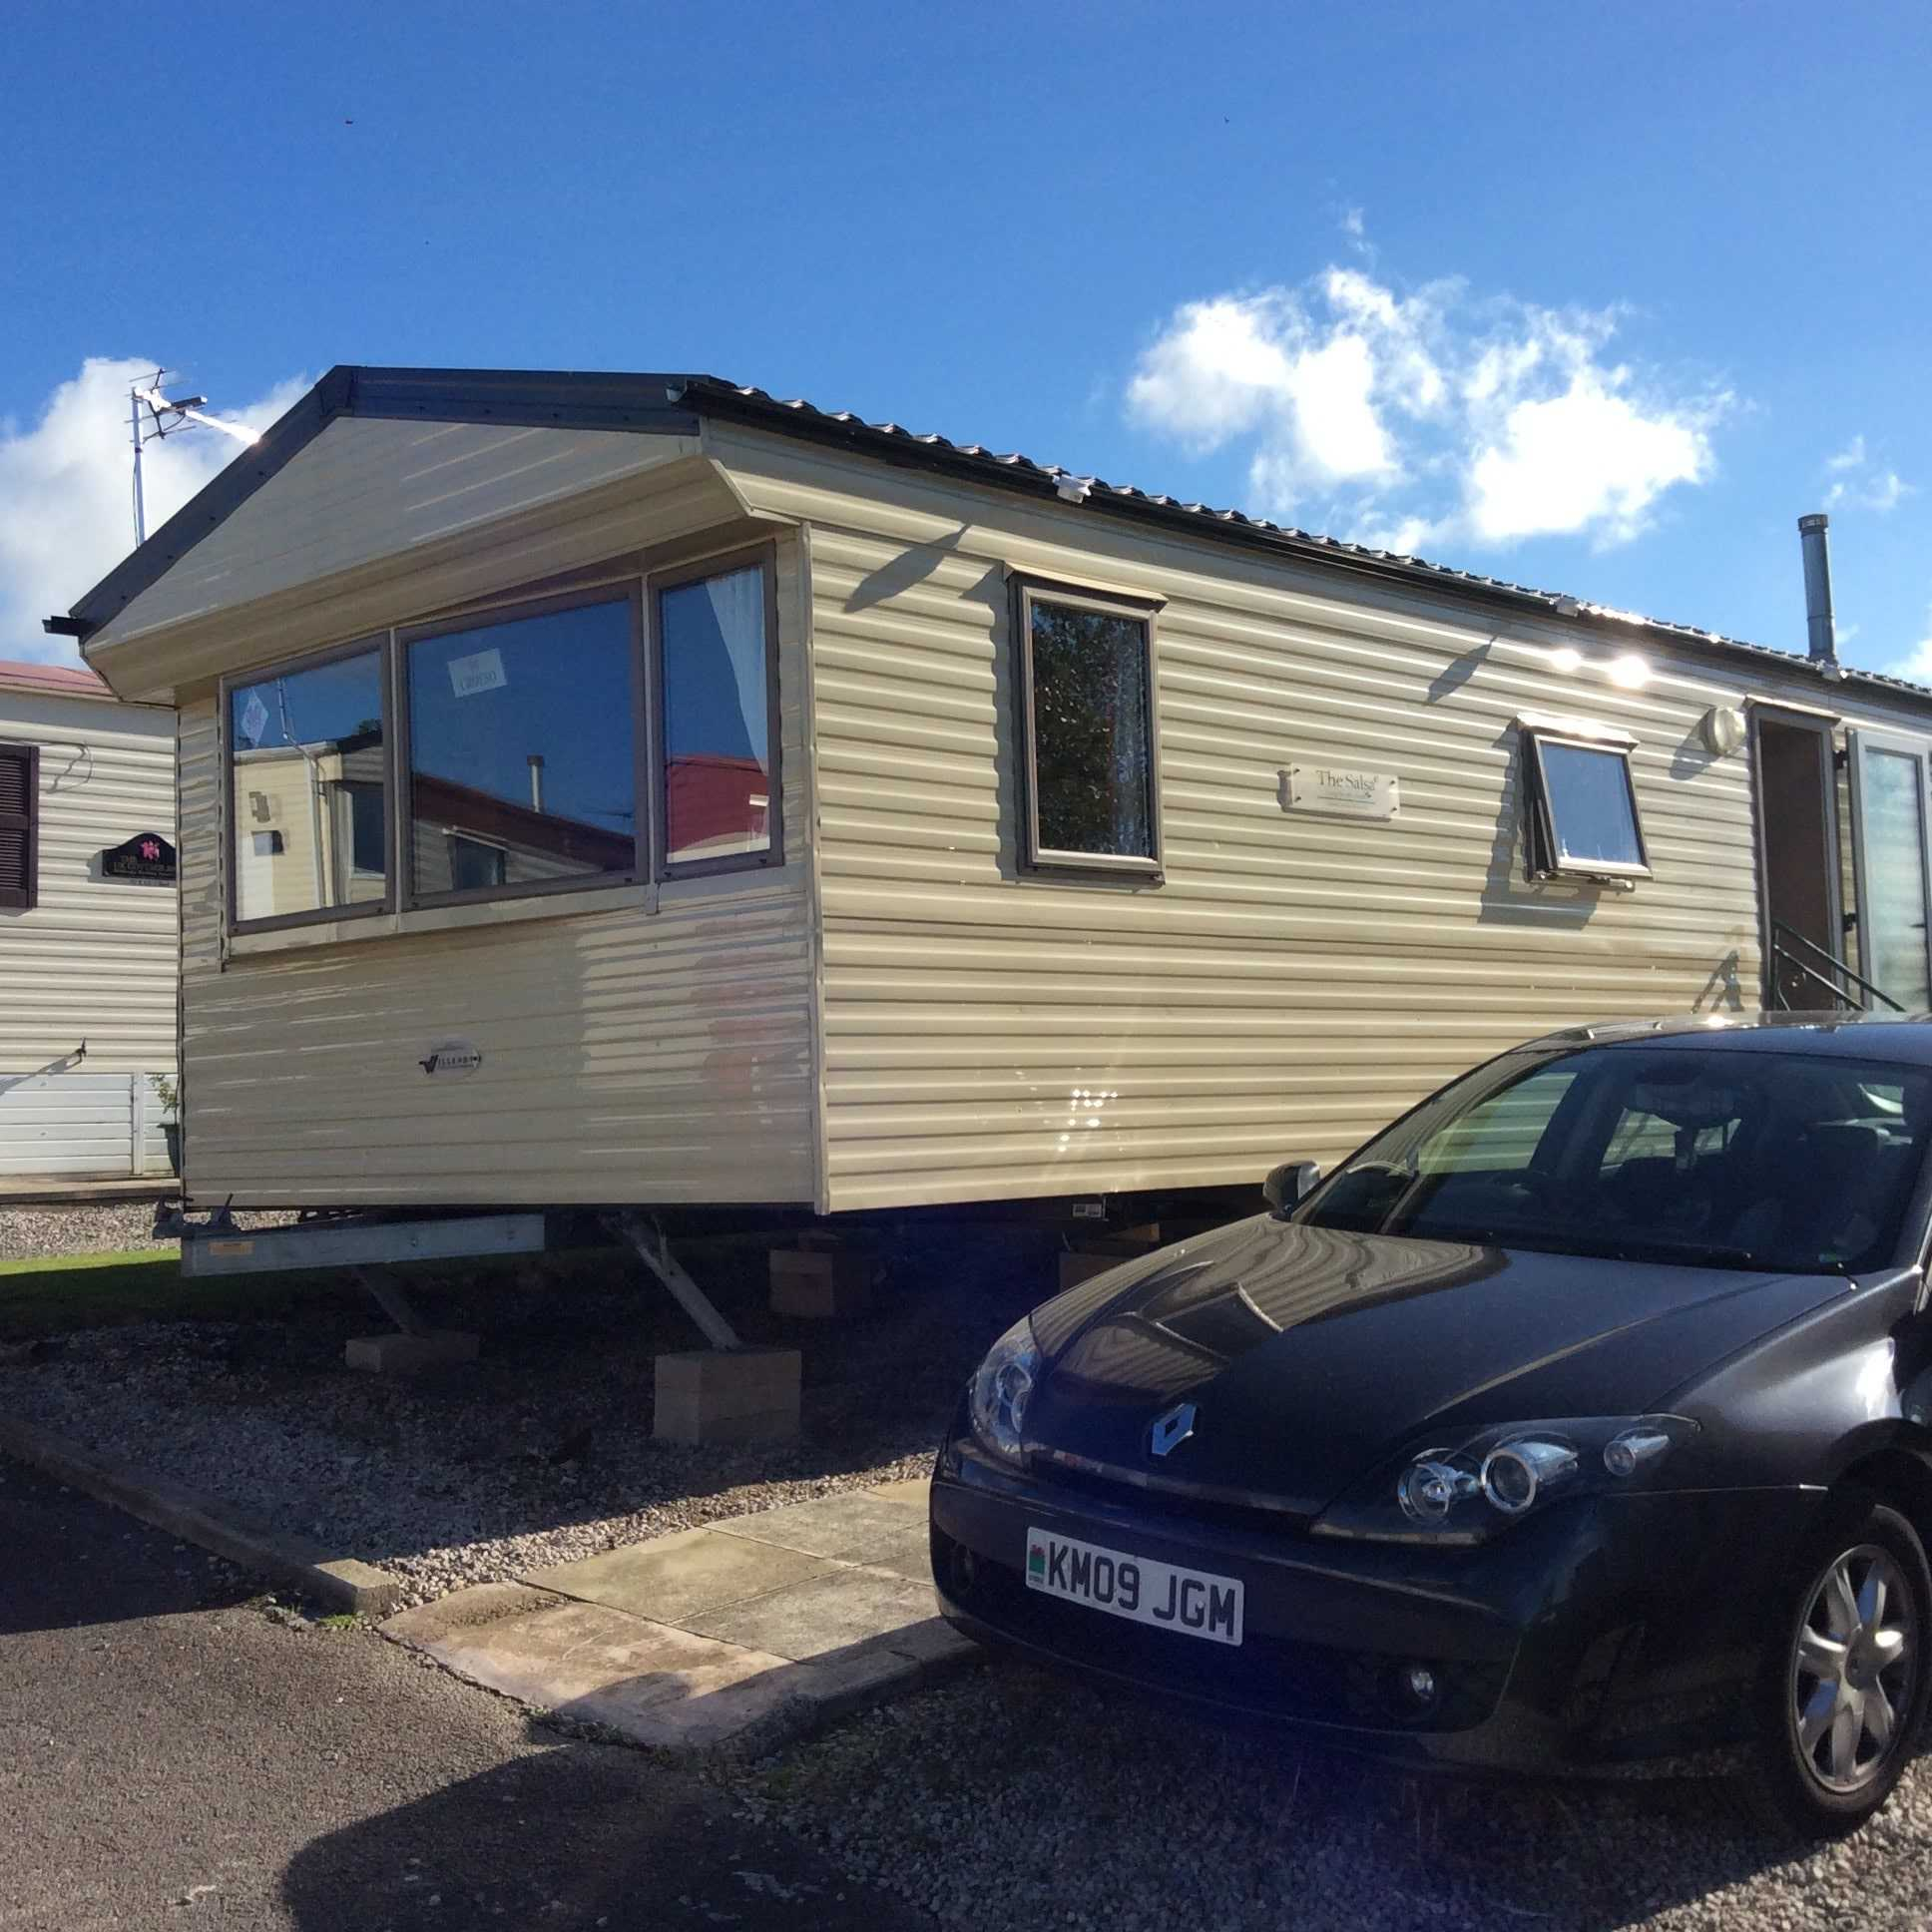 *152* Blue Dolphin Holiday Park, Filey, East Yorkshire